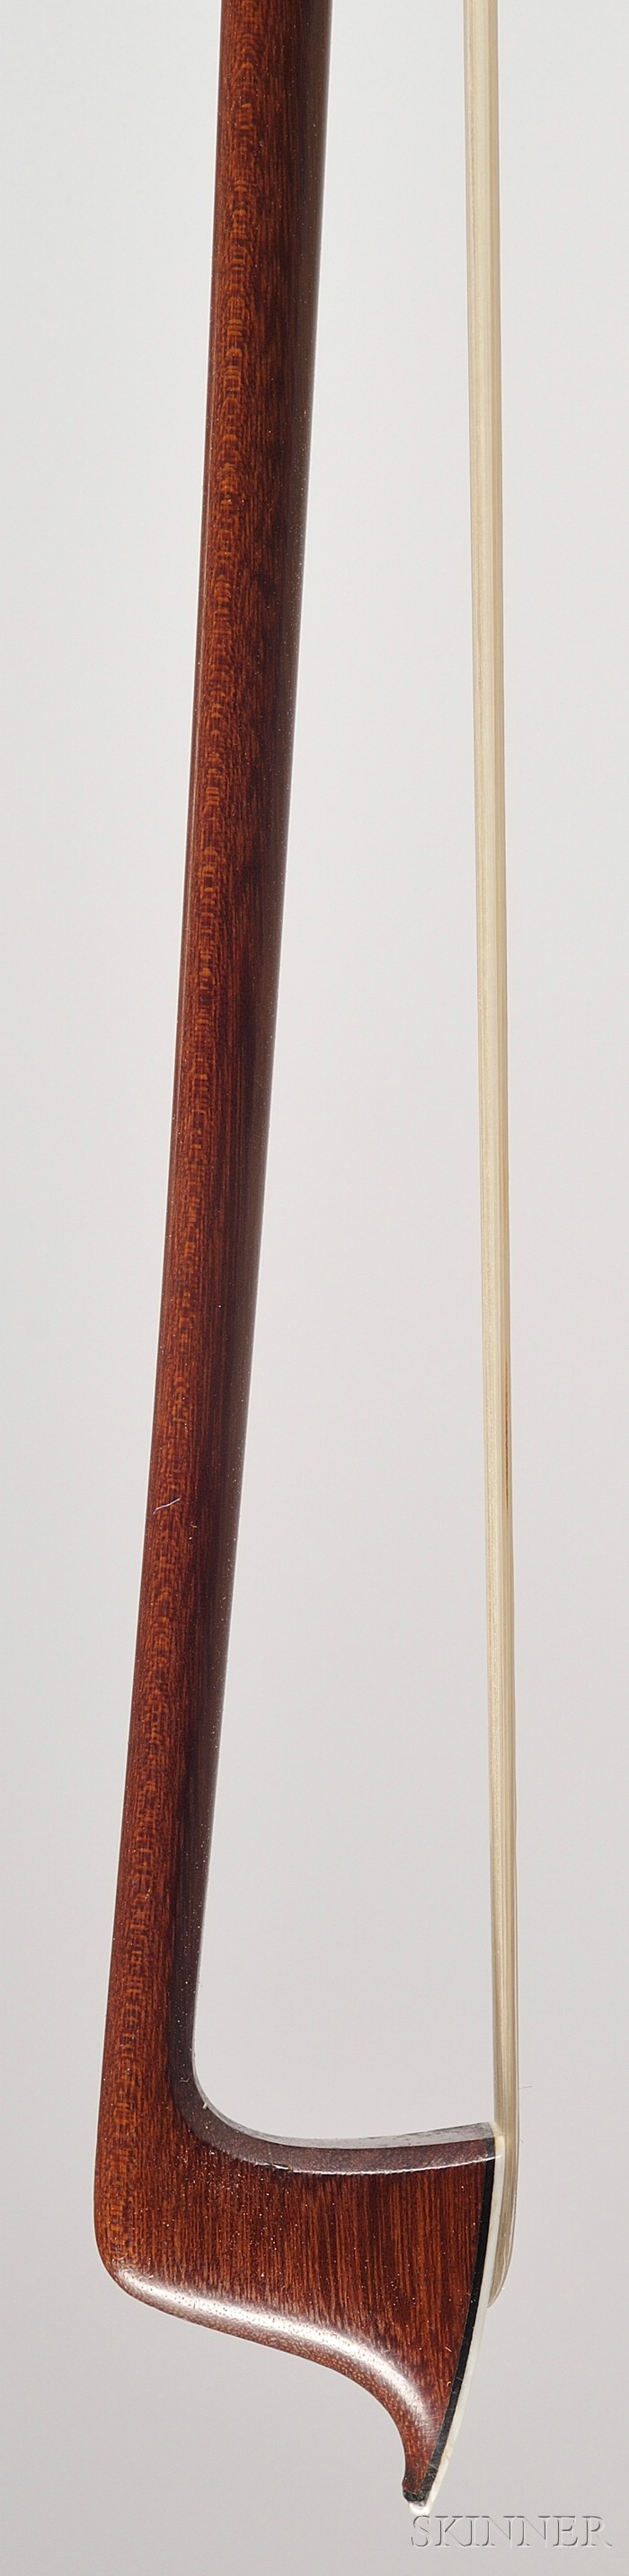 French Silver Mounted Violin Bow, Silvestre & Maucotel